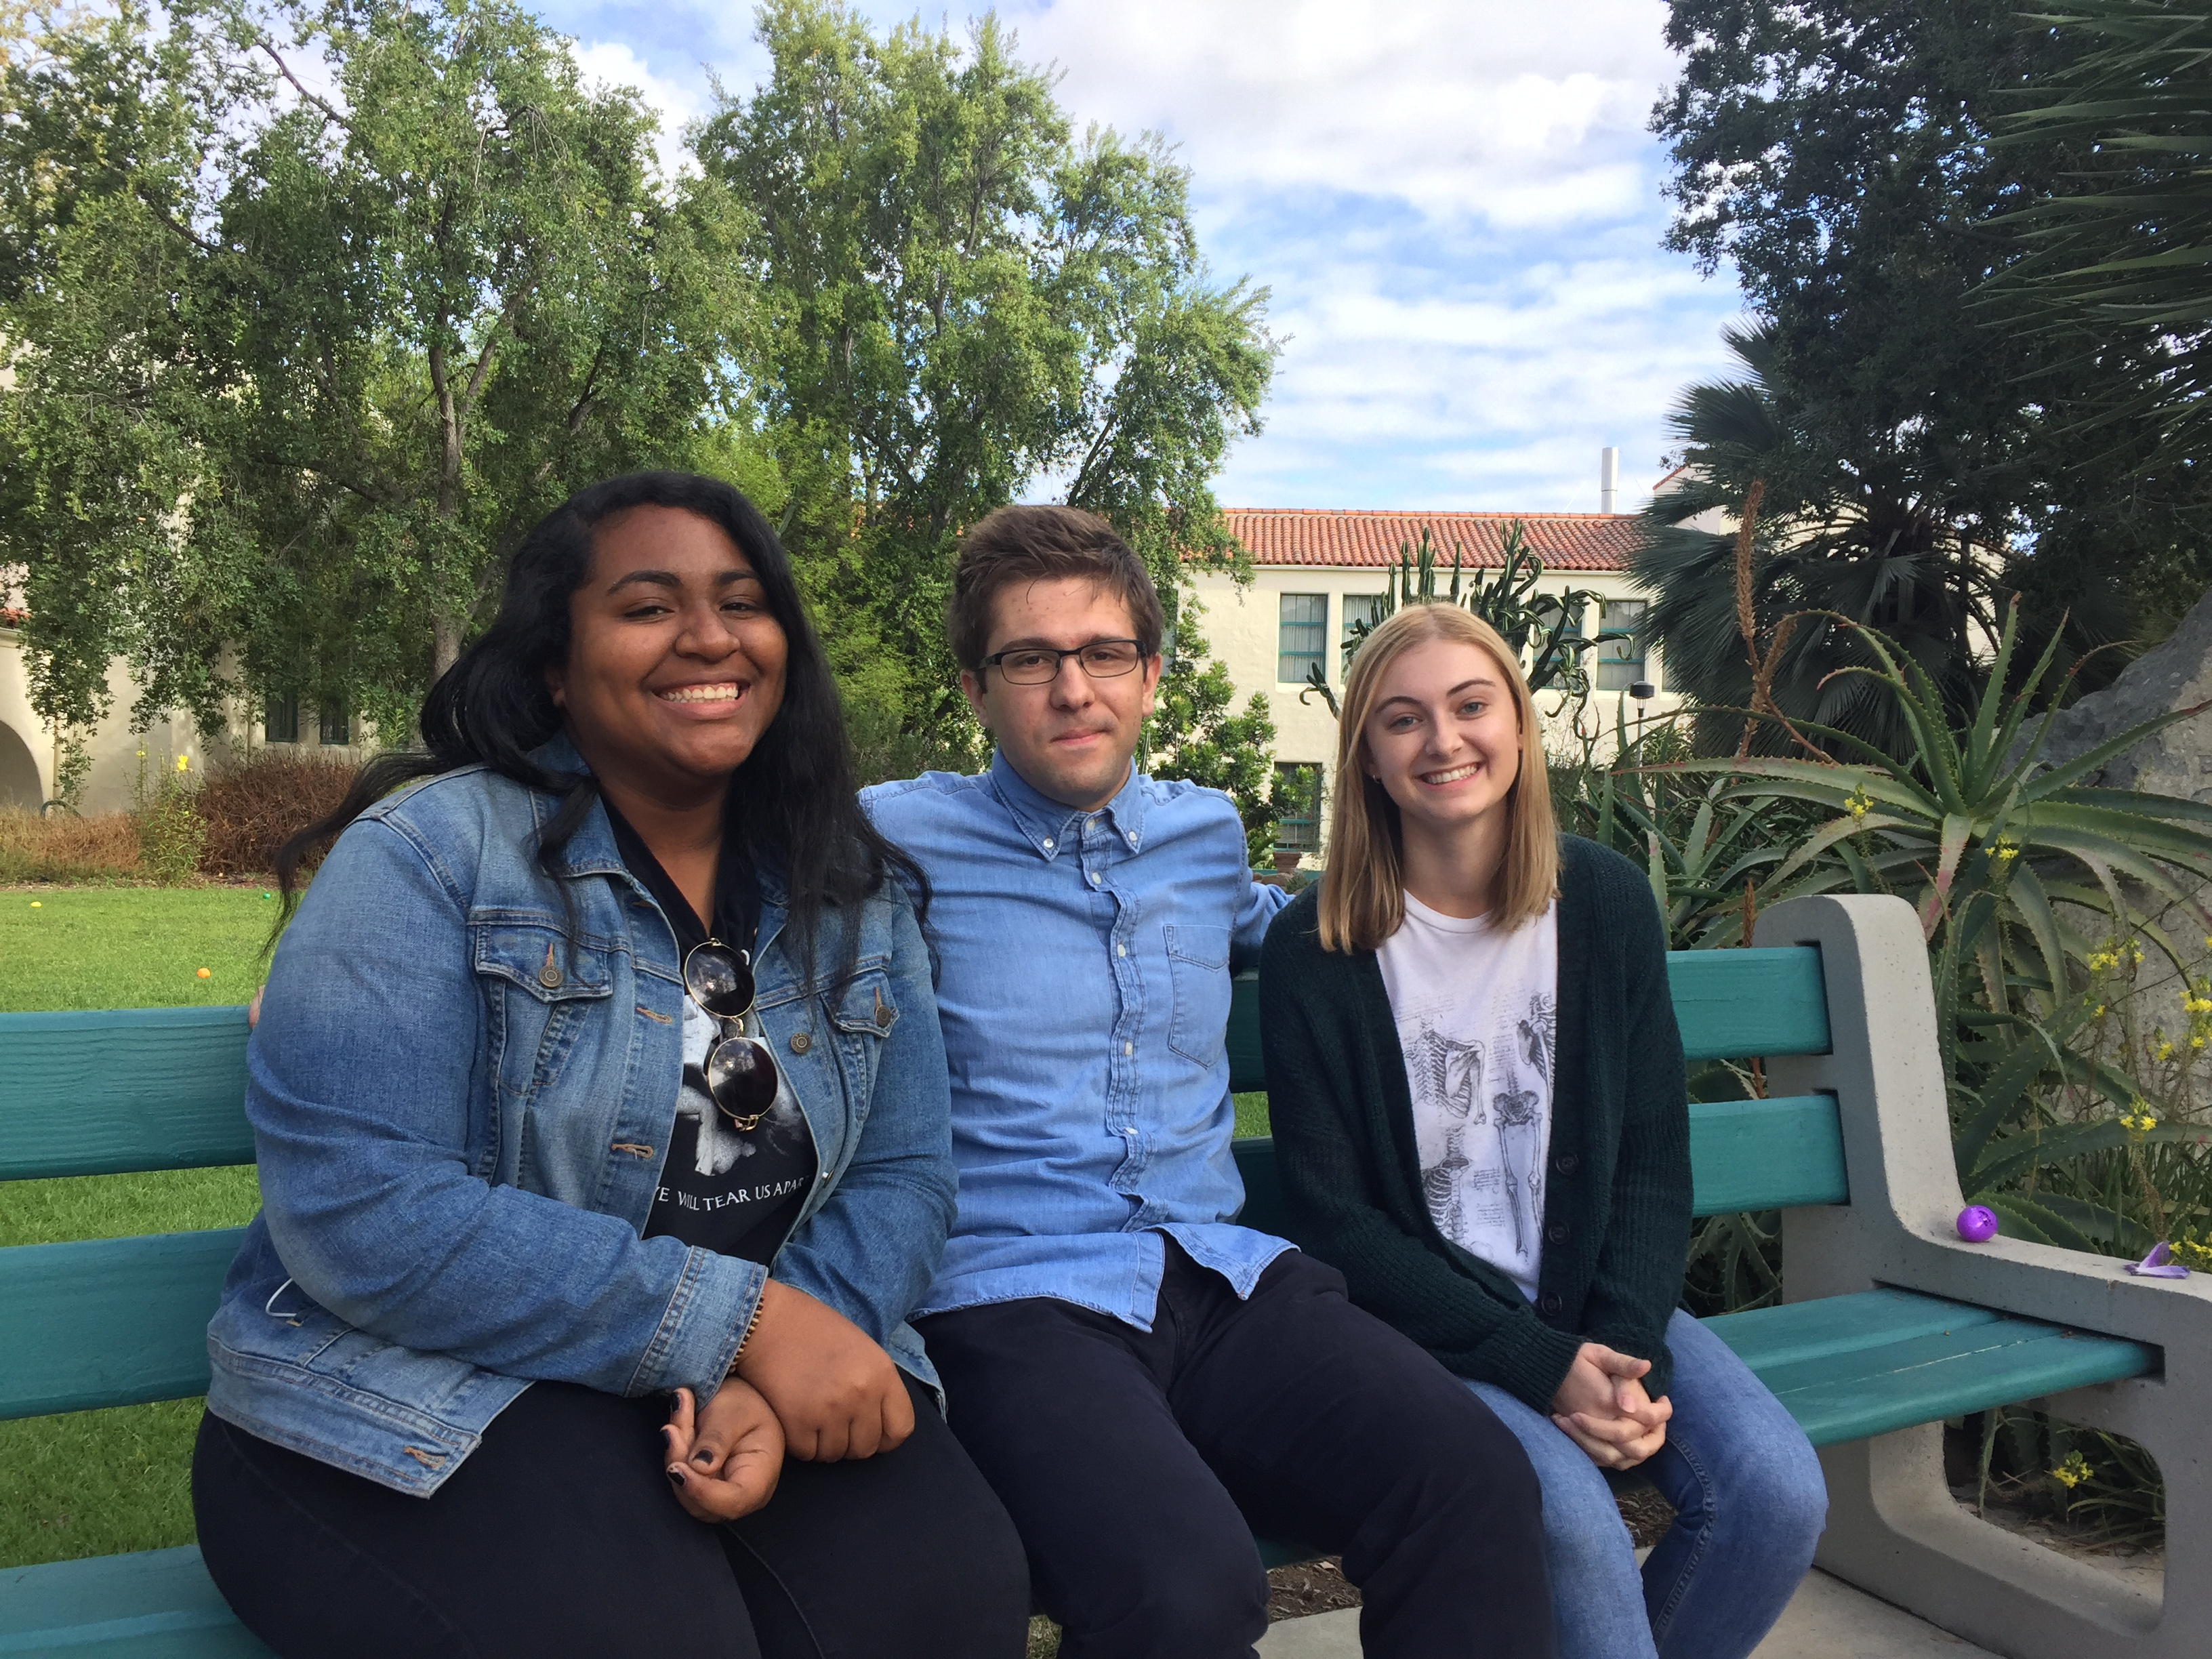 Caitlin, Nick and Alicia sitting in a courtyard at SDSU.